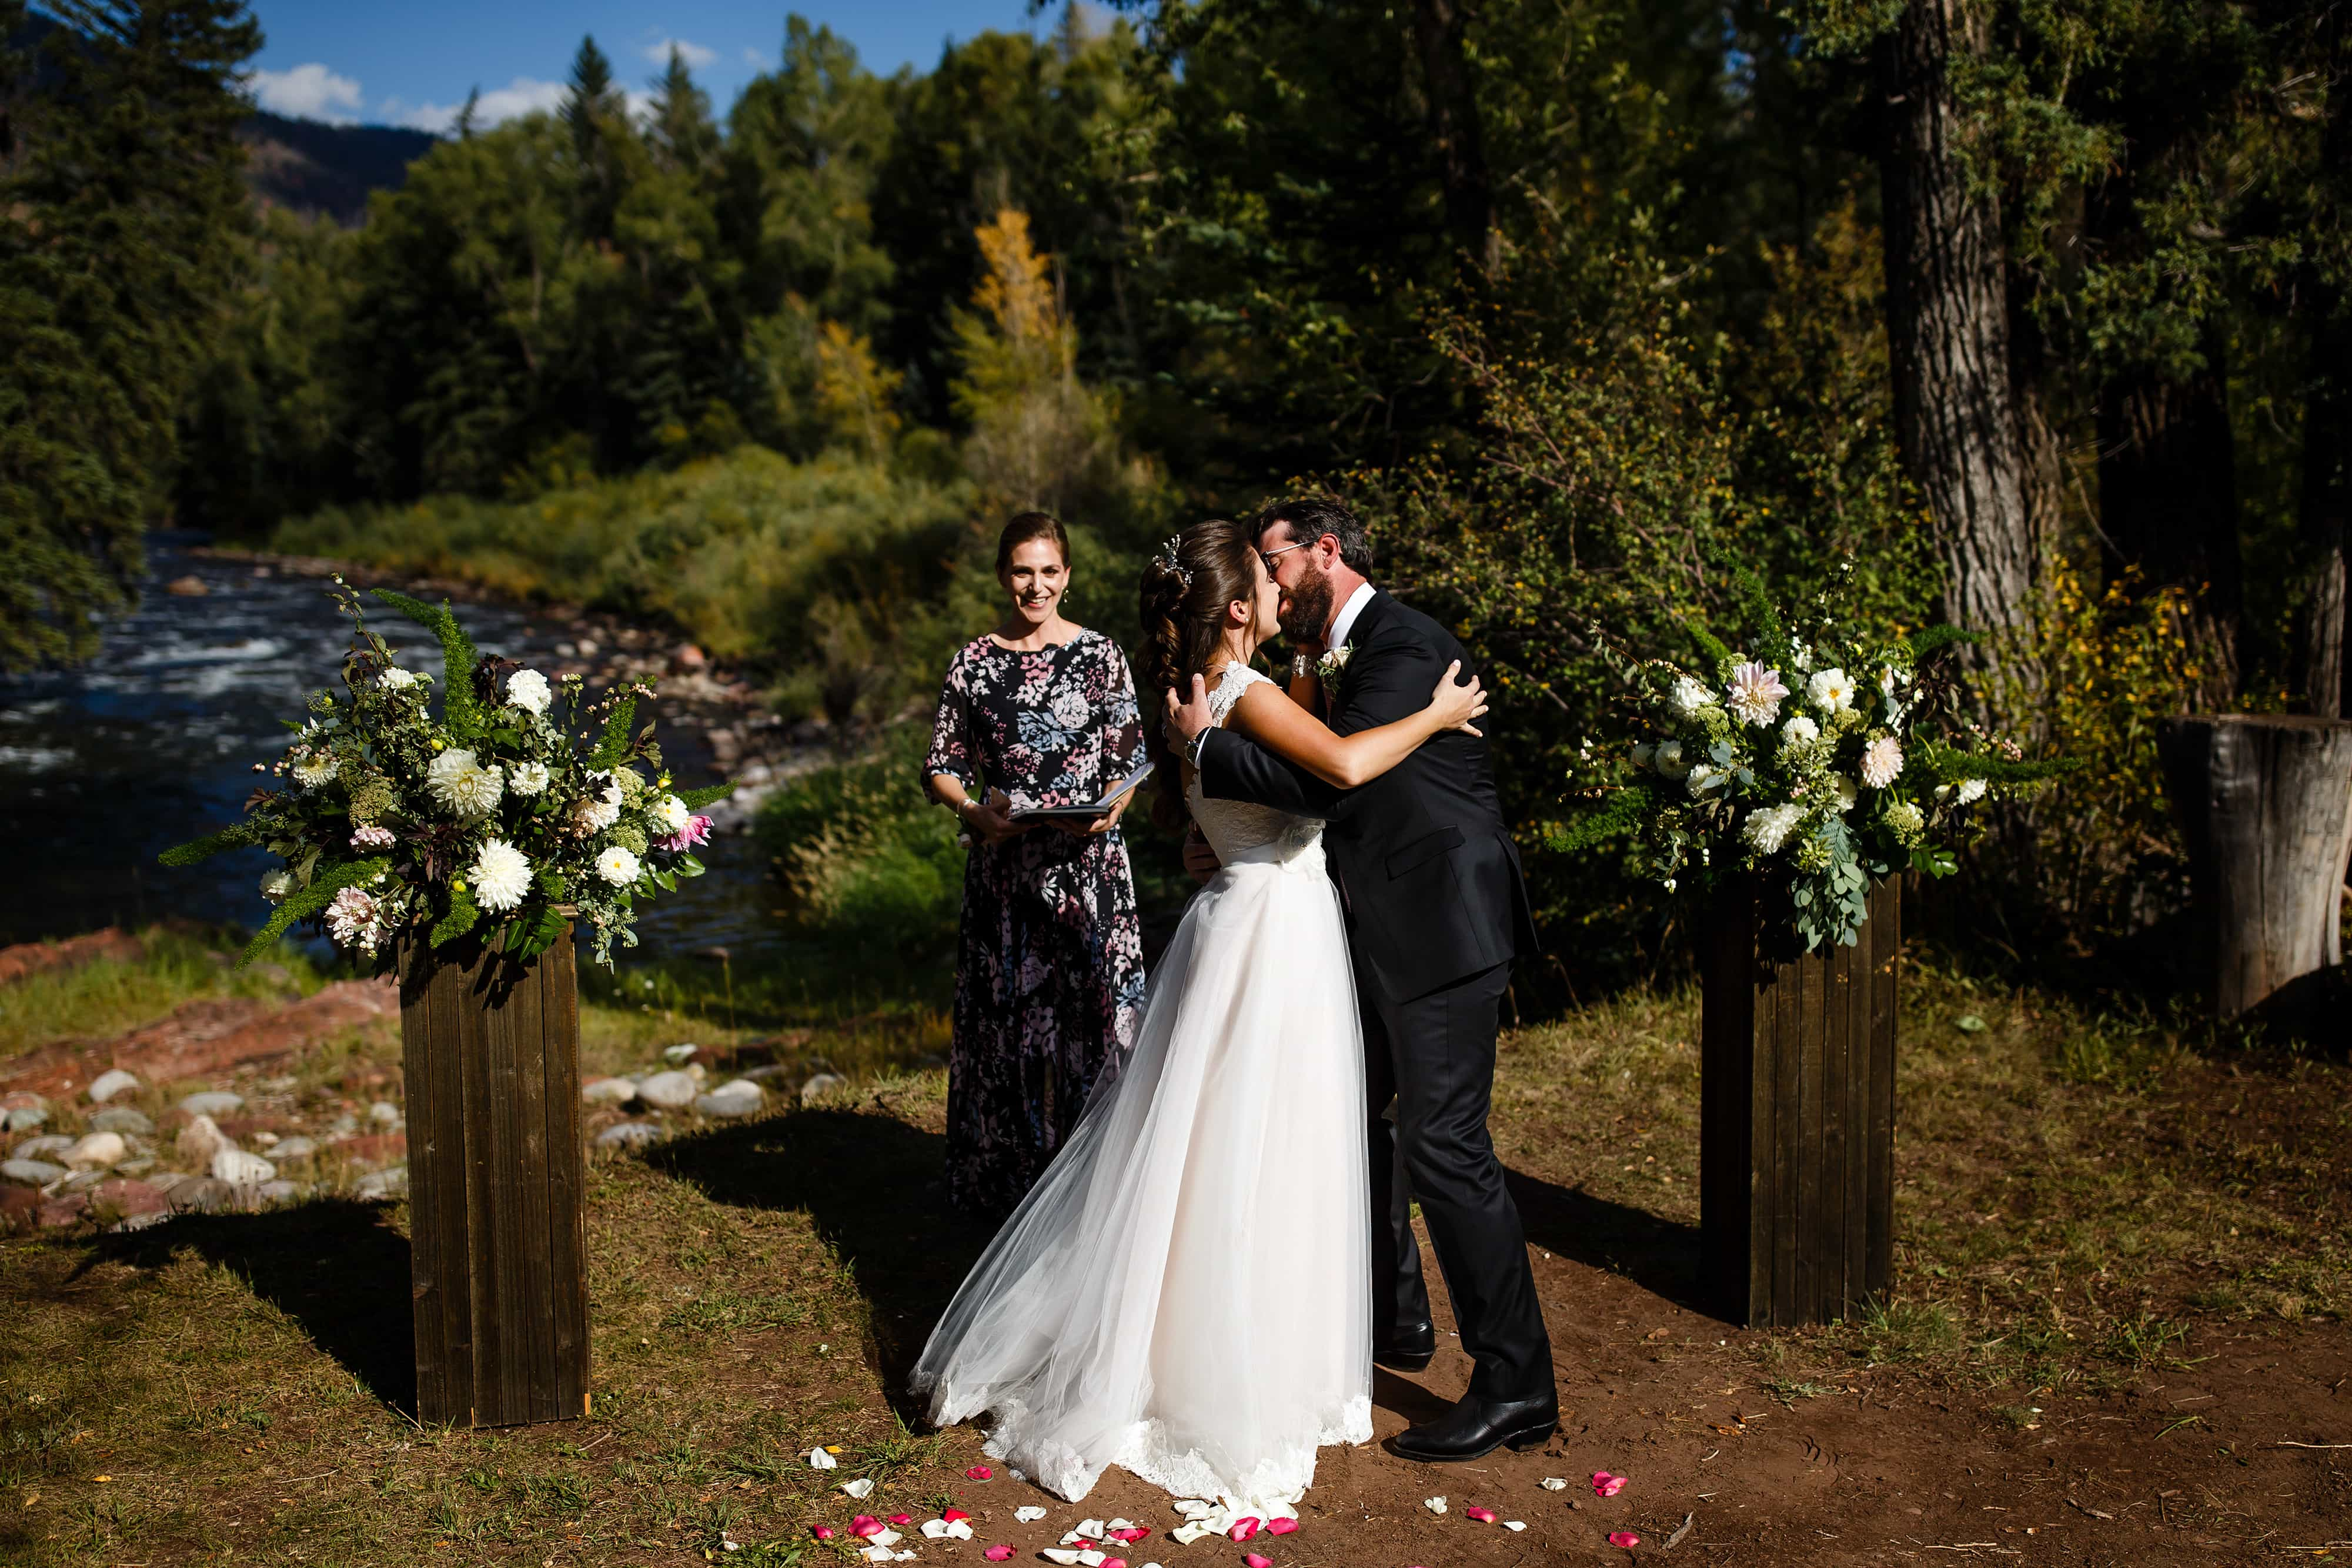 The groom kisses the bride during their wedding ceremony at Snowmass Cottages